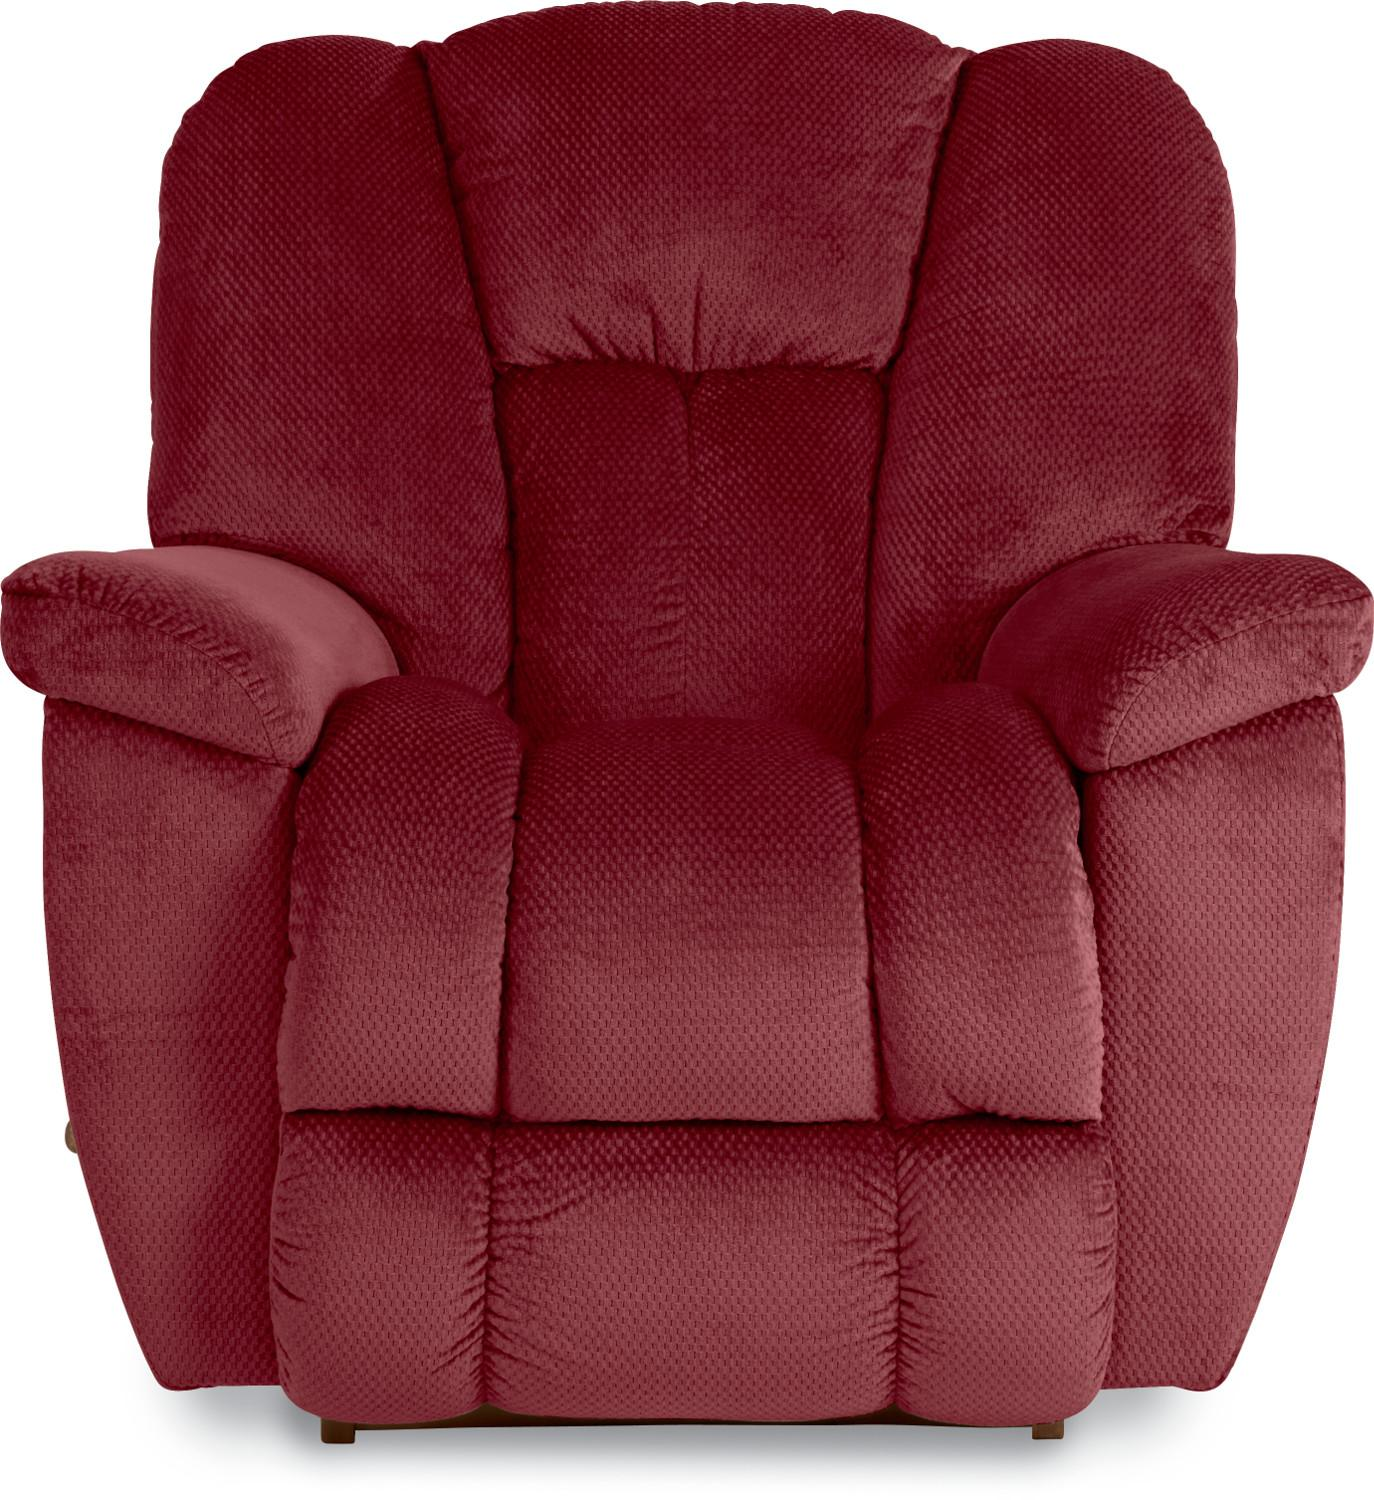 La-Z-Boy Maverick Rocker Recliner - Item Number: 010582D101208